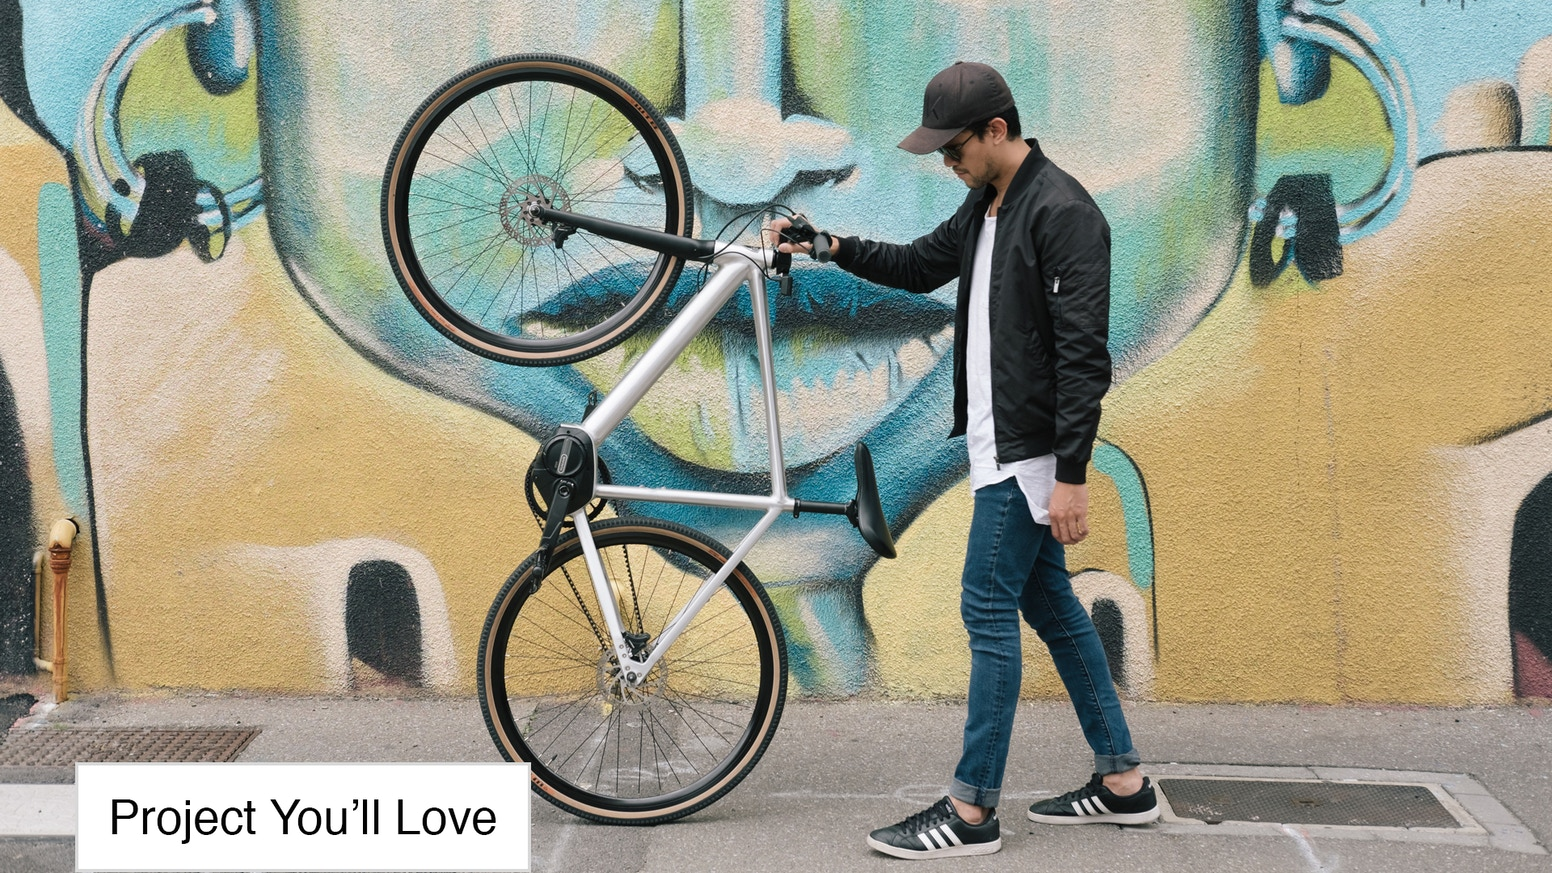 Go anywhere with all of the fun and none of the sweat, with Miller, the world's sleekest commuting electric bike.